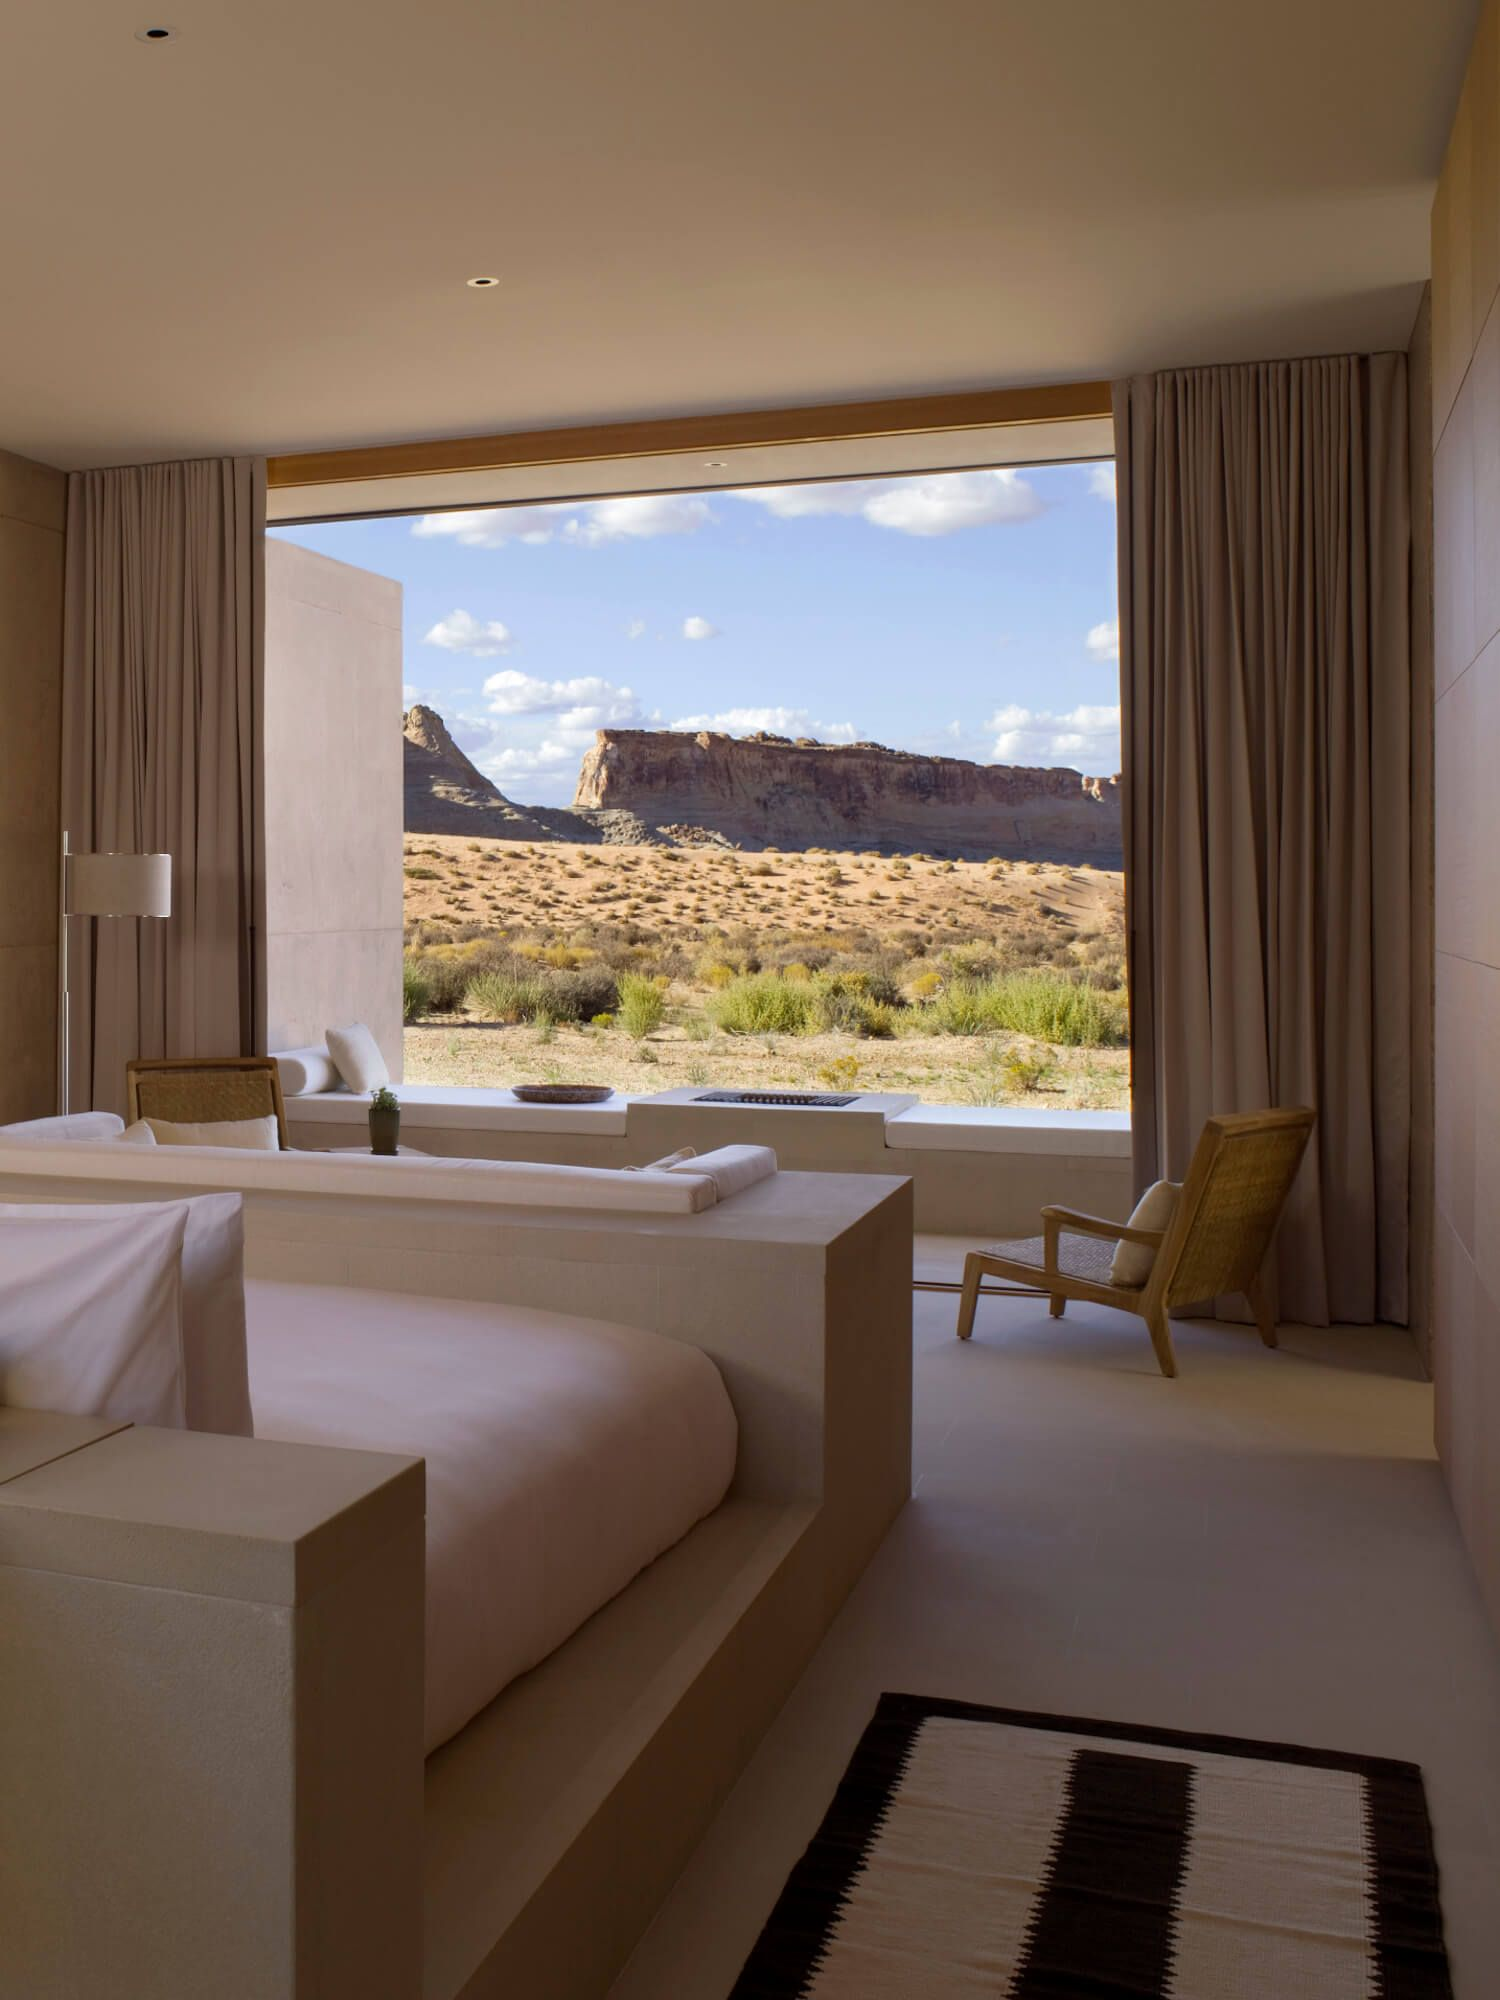 Photo of Amangiri | Luxury Desert Resort at Canyon Point, Utah, USA | est living